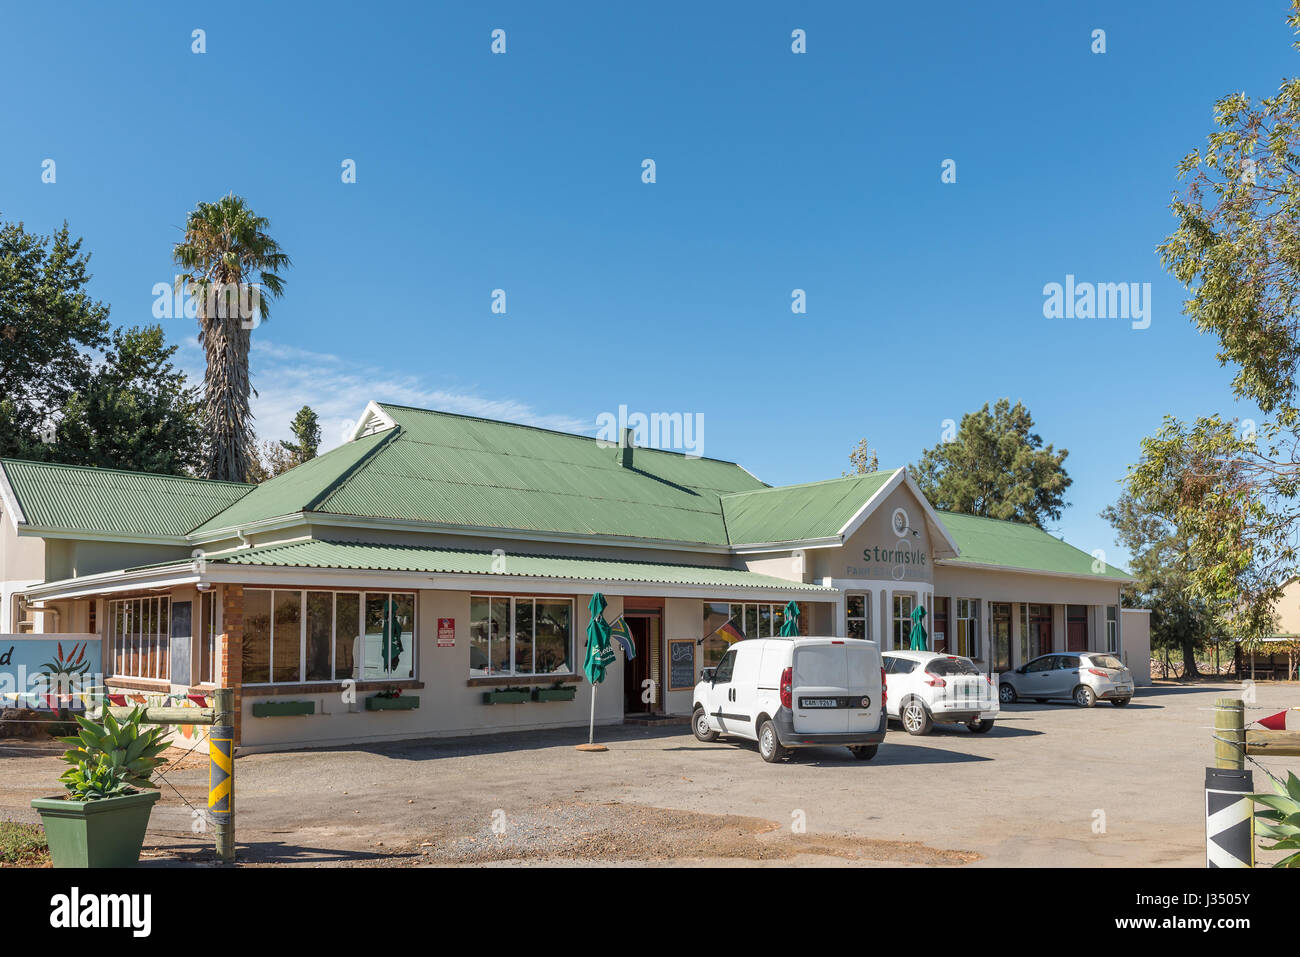 stormsvlei, south africa - march 26, 2017: a farm stall and stock